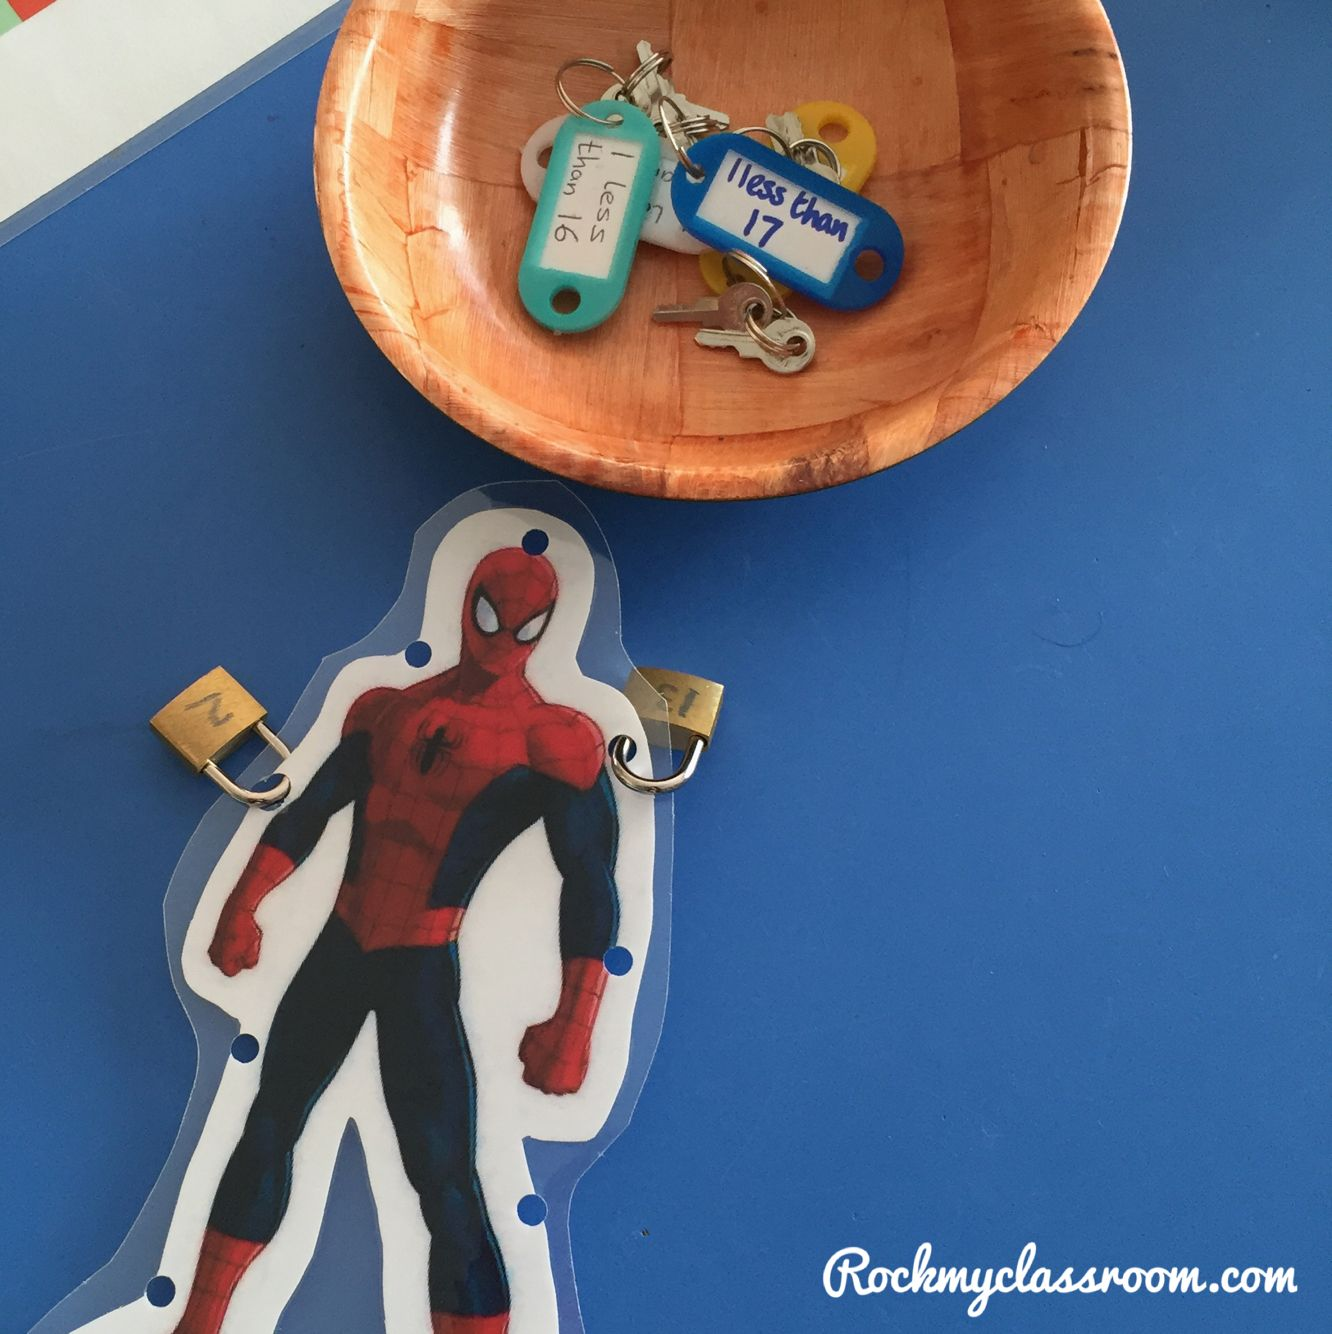 Free The Superheroes By Unlocking Their Padlock With The